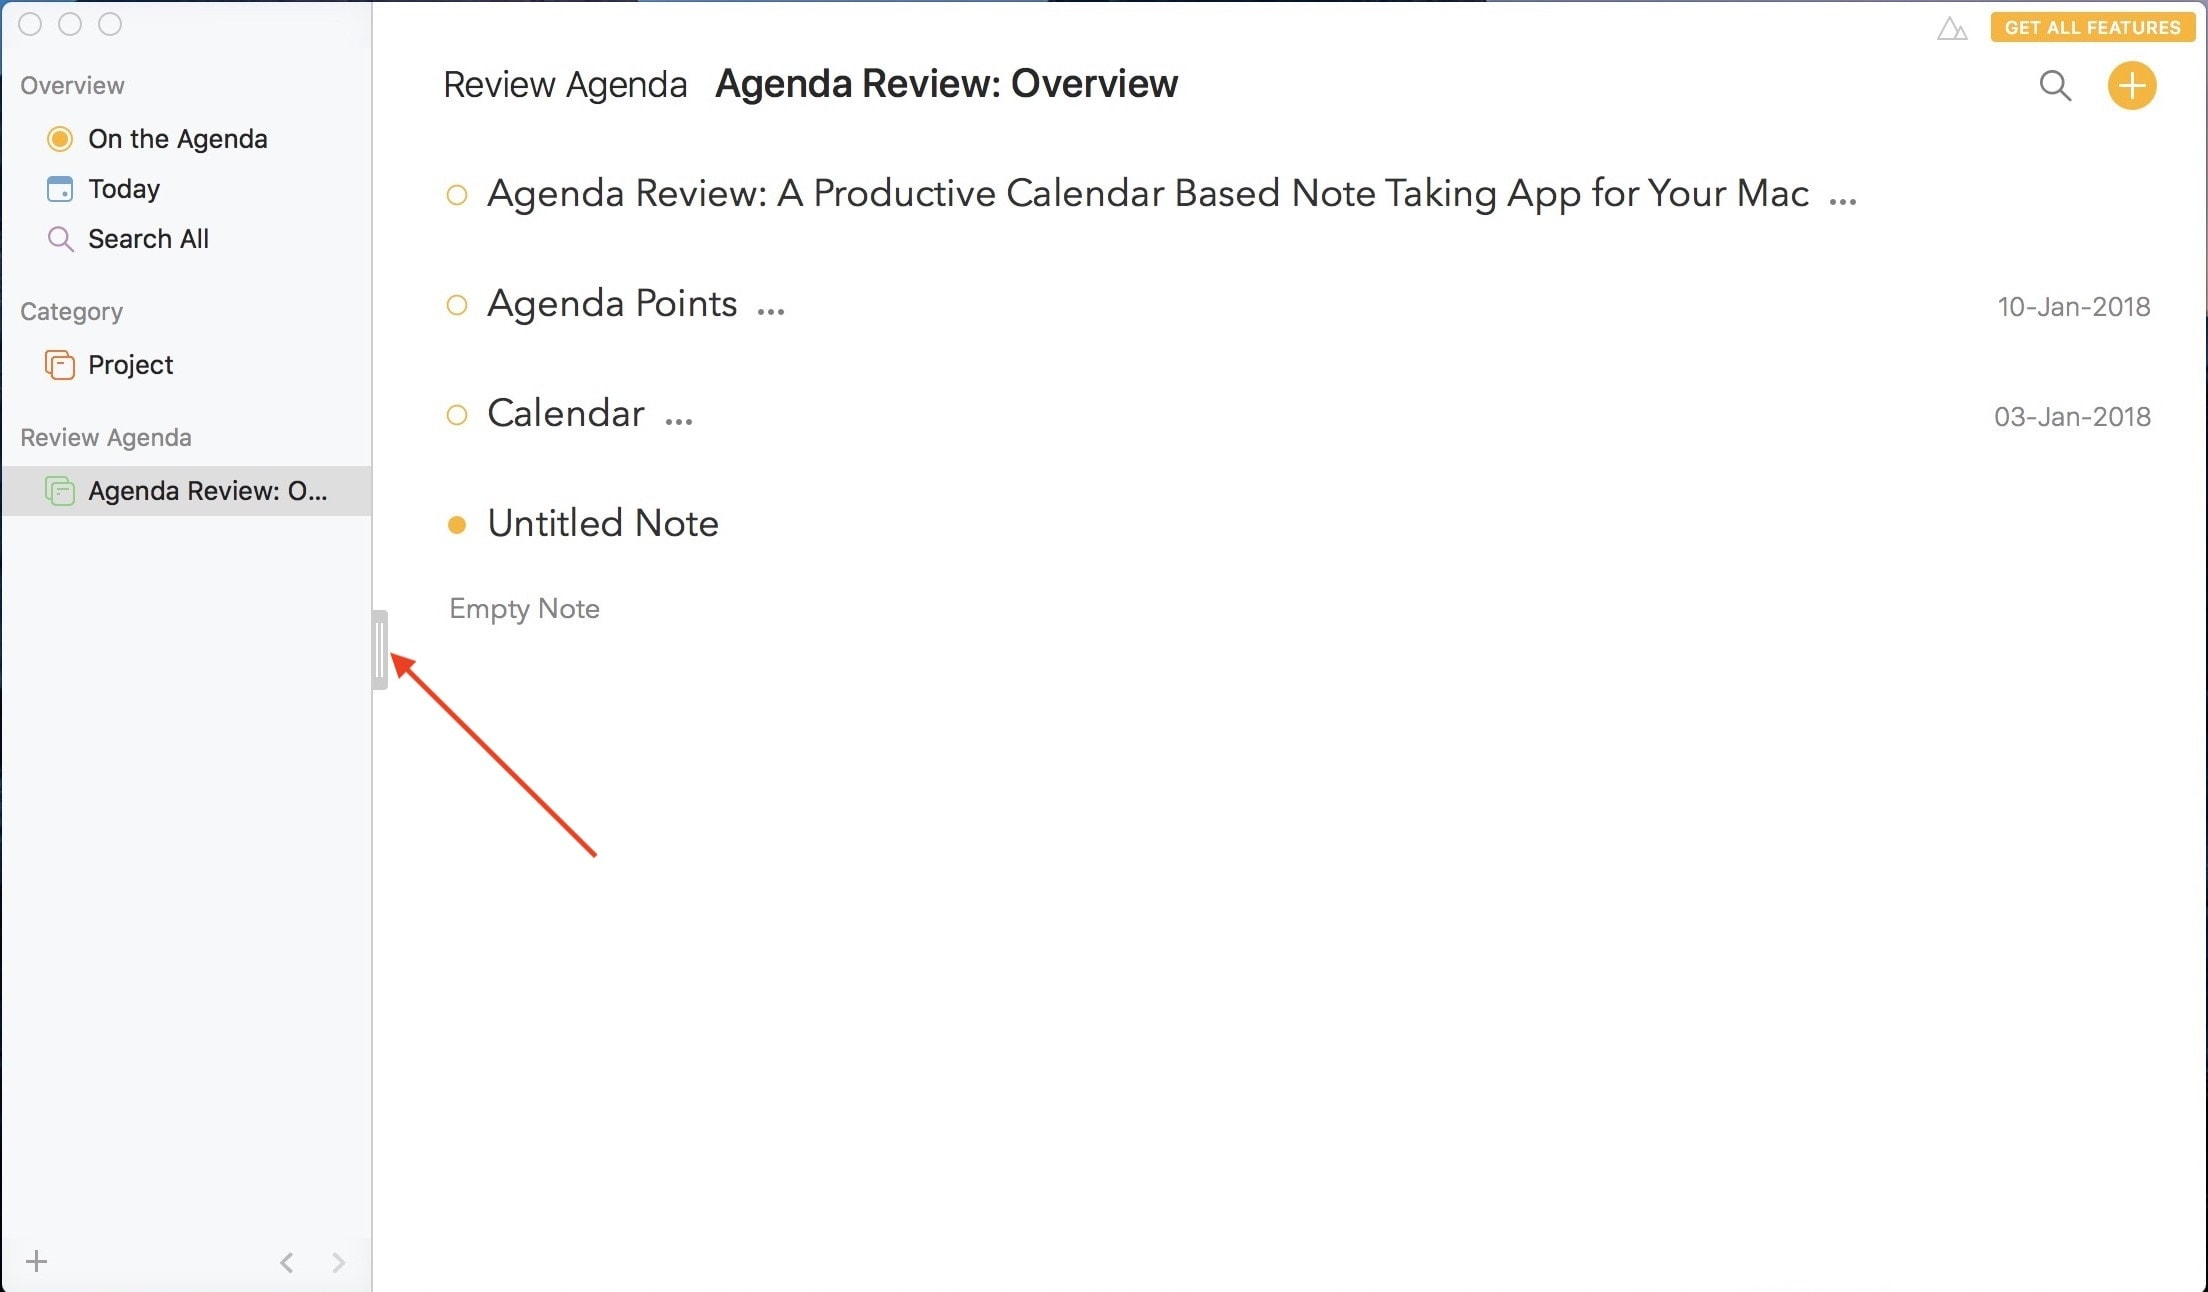 Agenda Review  Overview 2.jpg